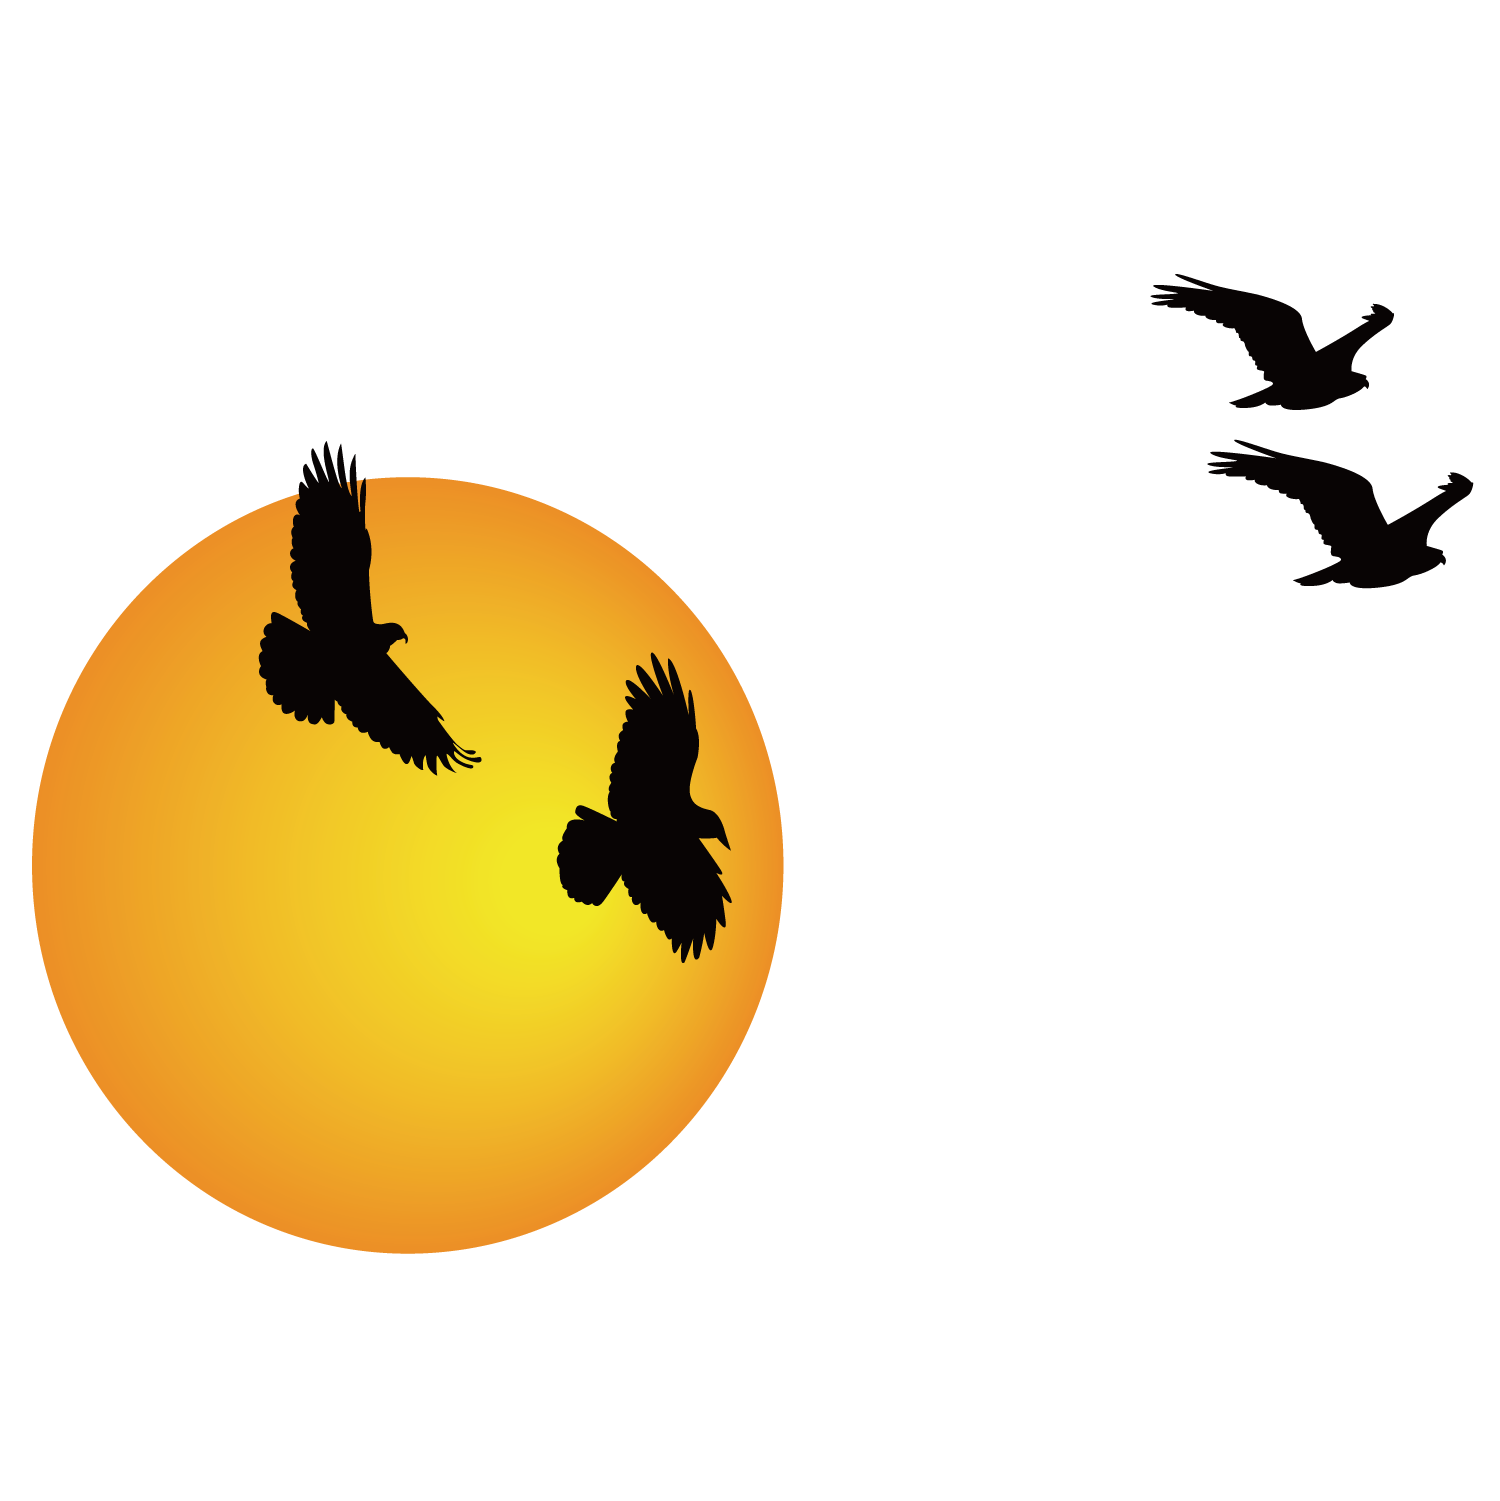 Sunrise transparent cartoon. Sunset transprent png free